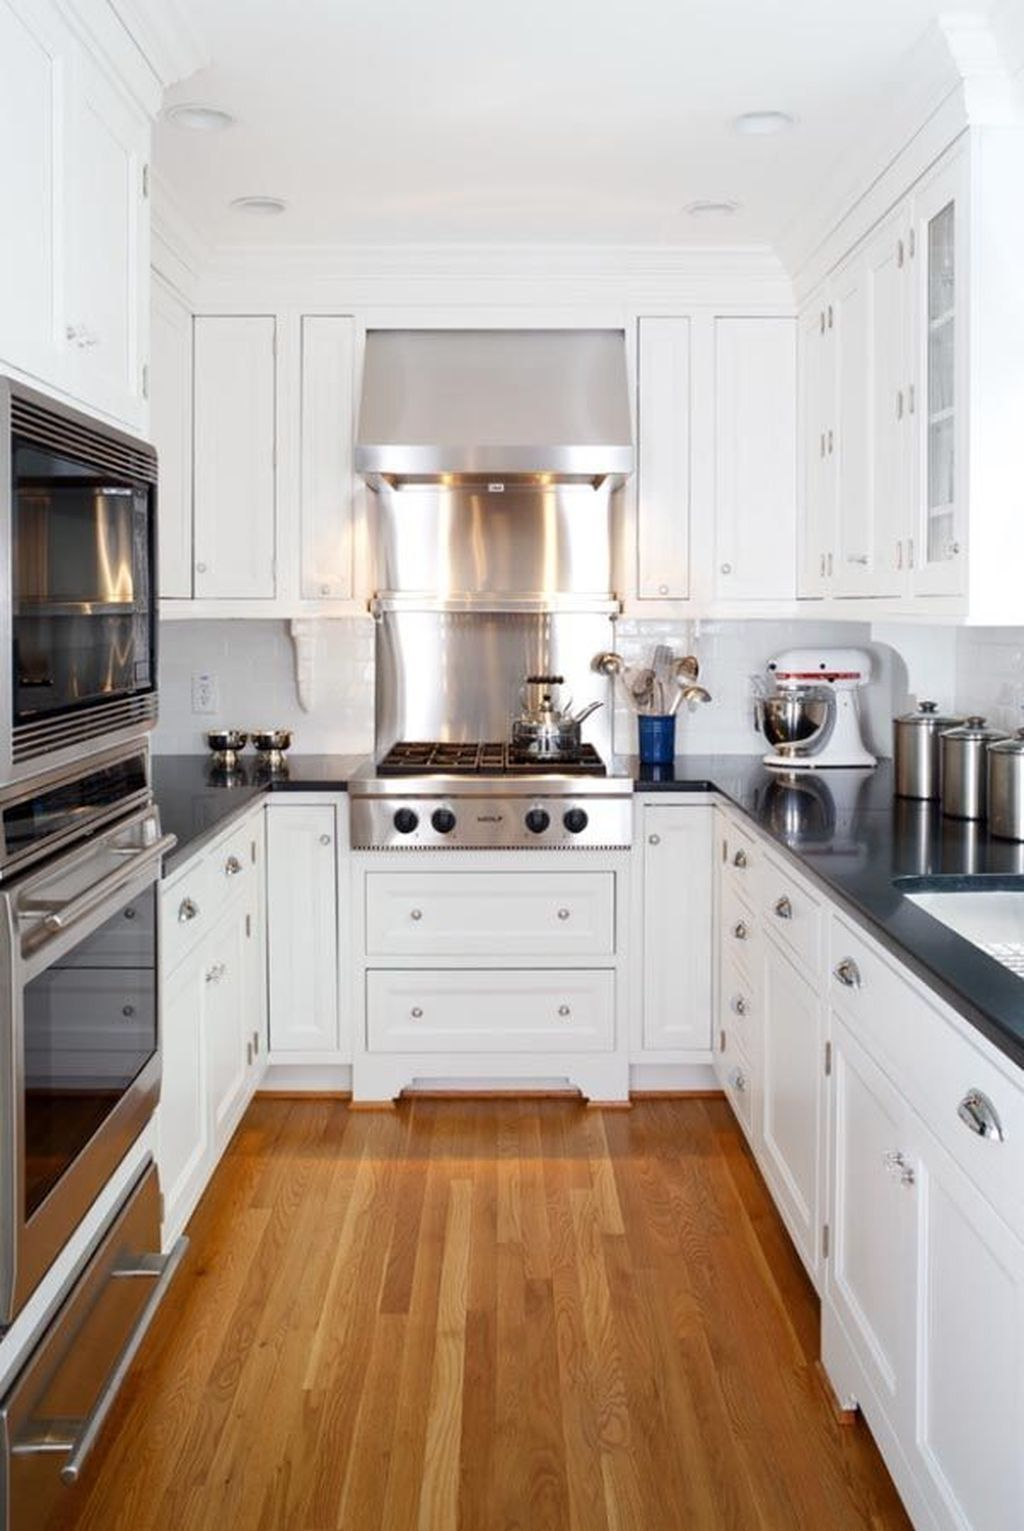 20 unique small house kitchen ideas kitchen remodel on awesome modern kitchen design ideas id=31867